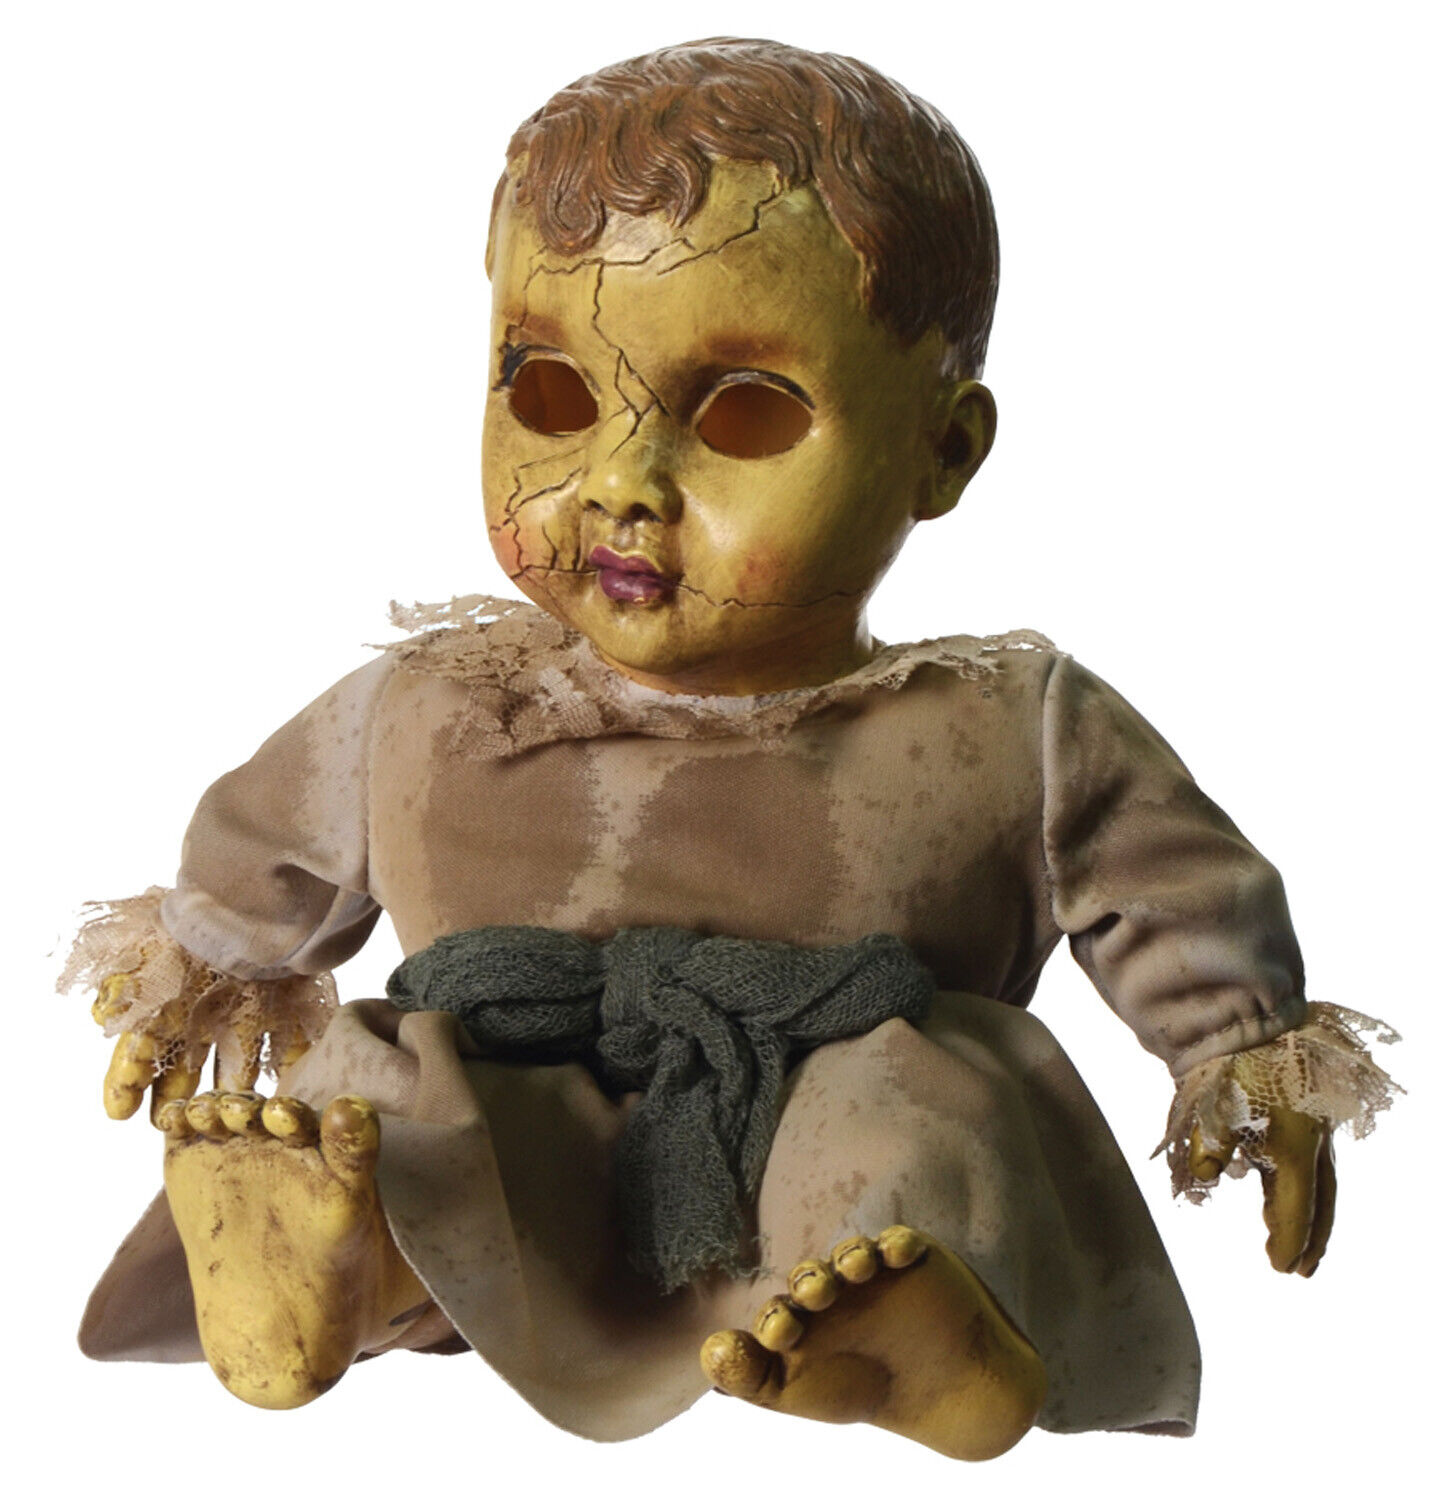 Baby Face Reaper Creeper Prop Halloween Haunted House Decor For Sale Online Ebay